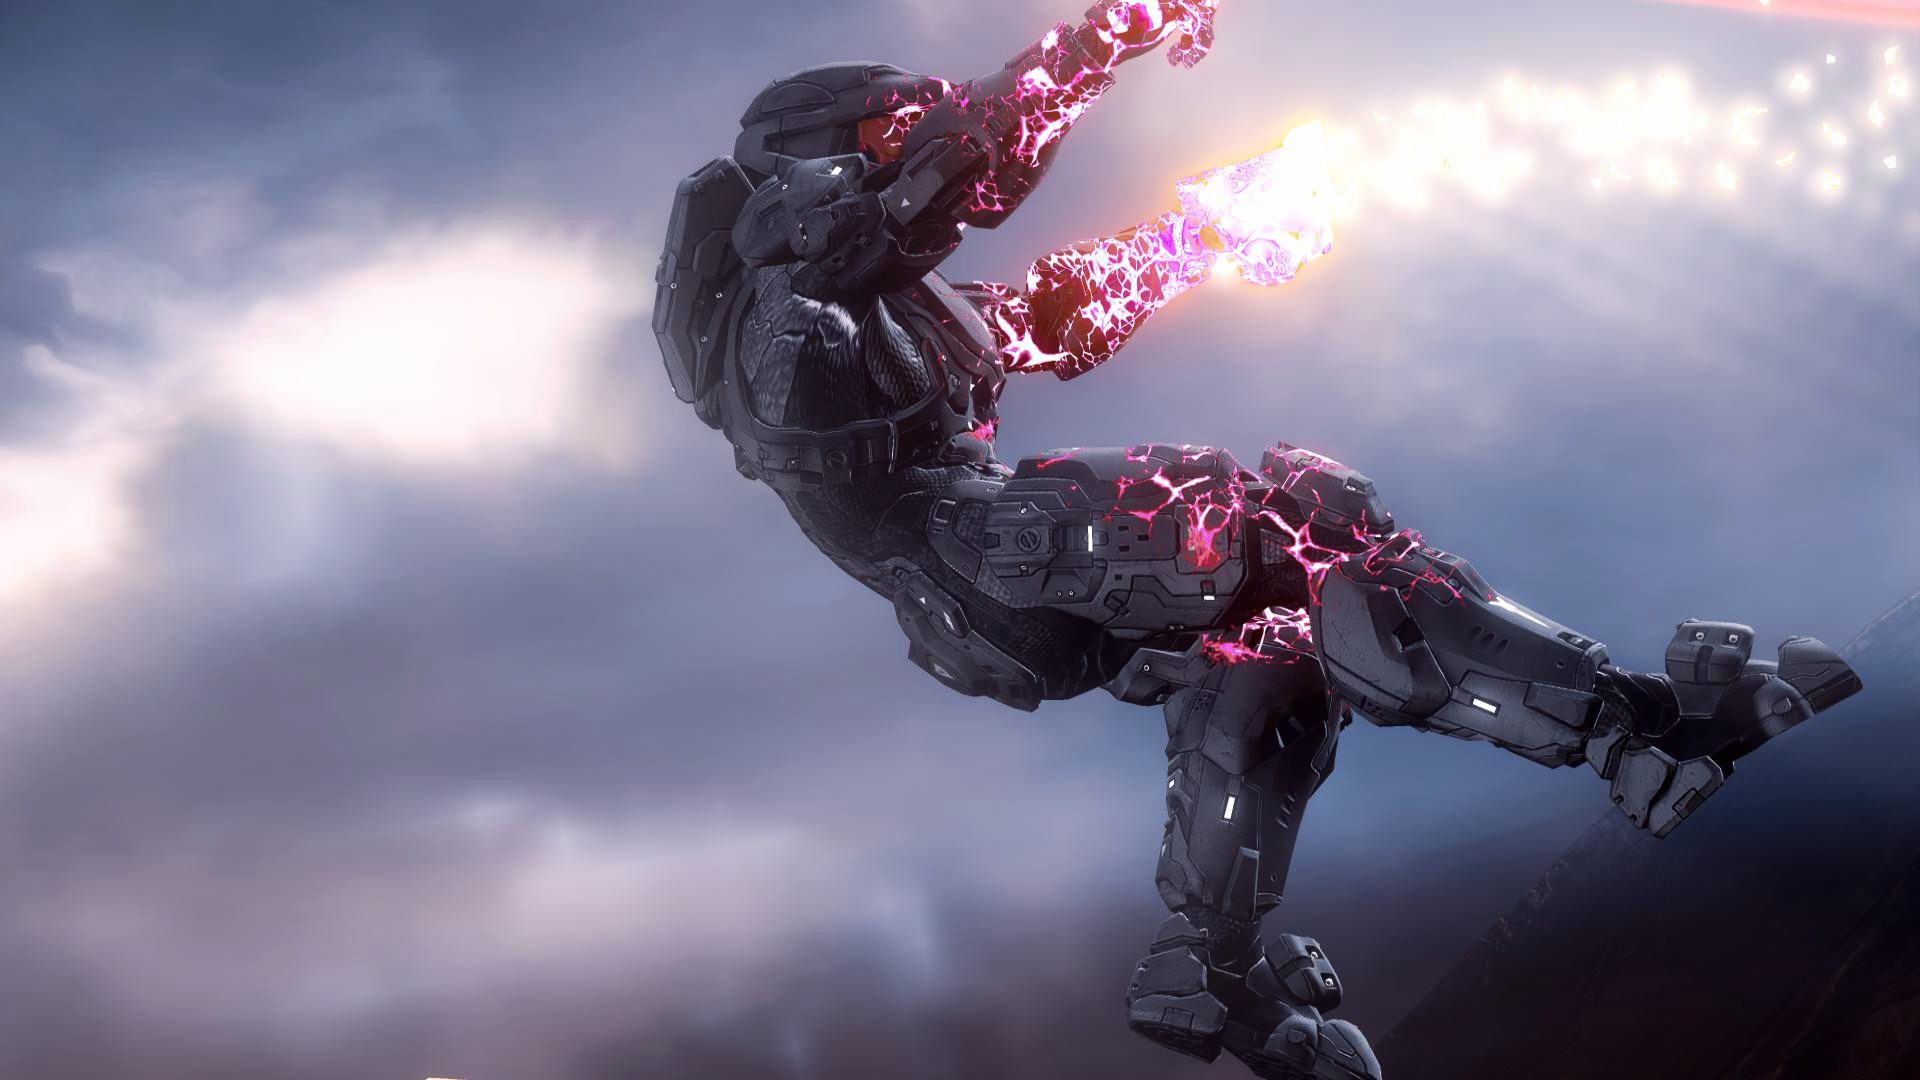 Halo 5 Guardians Video Game 5 Widescreen Wallpaper 1920x1080